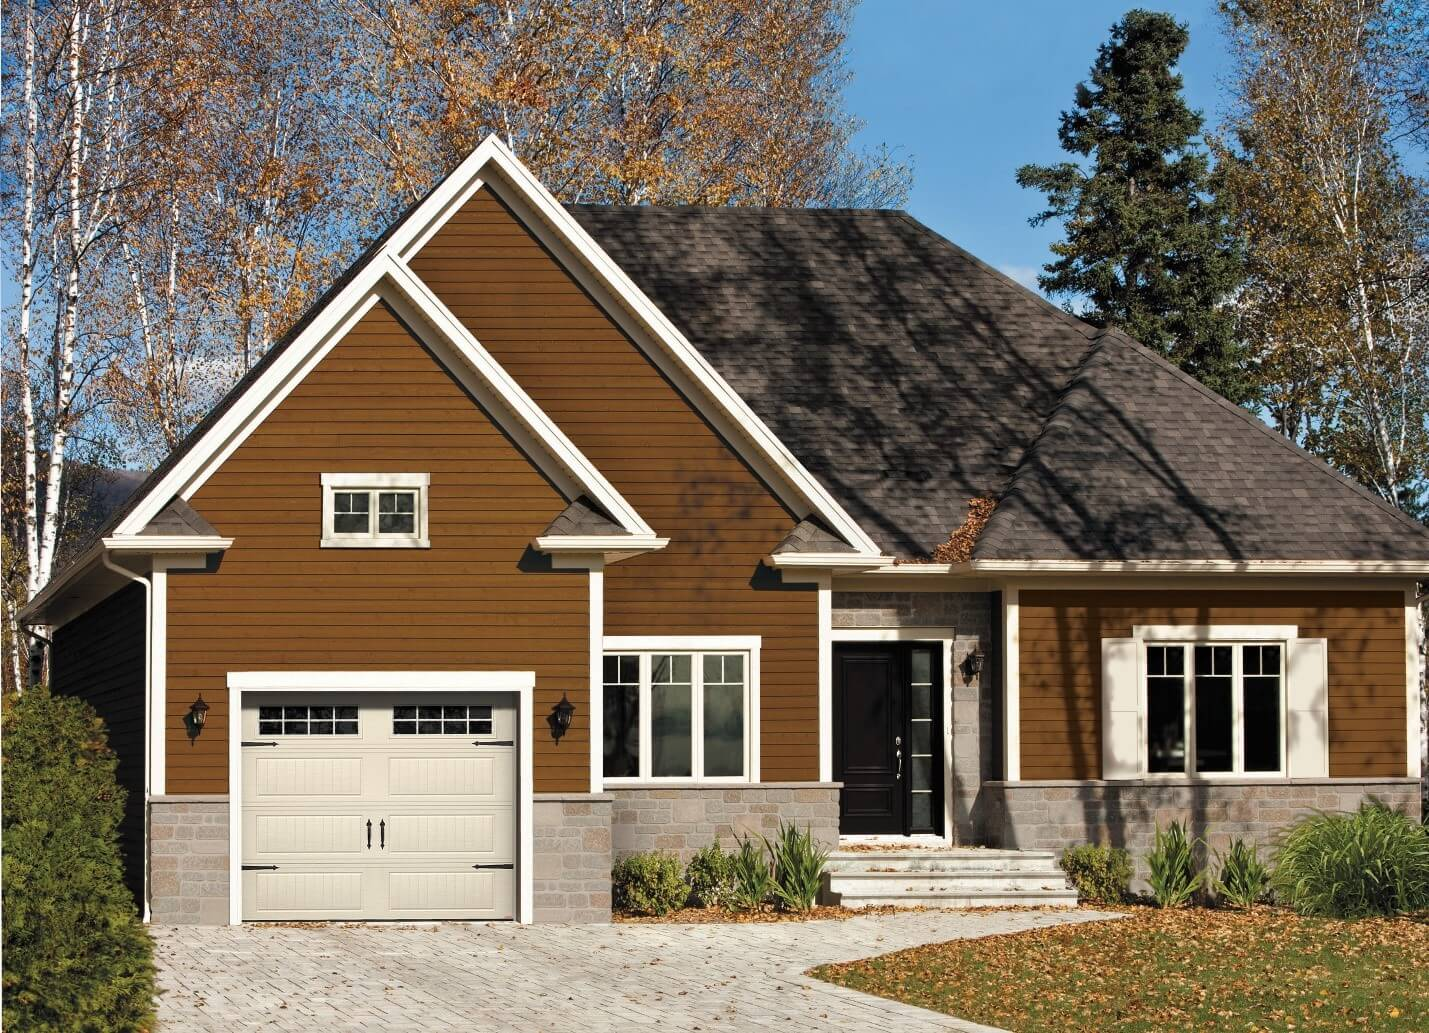 Stone and wood traditional1-story home with a North Hatley LP, color Sand, and windows